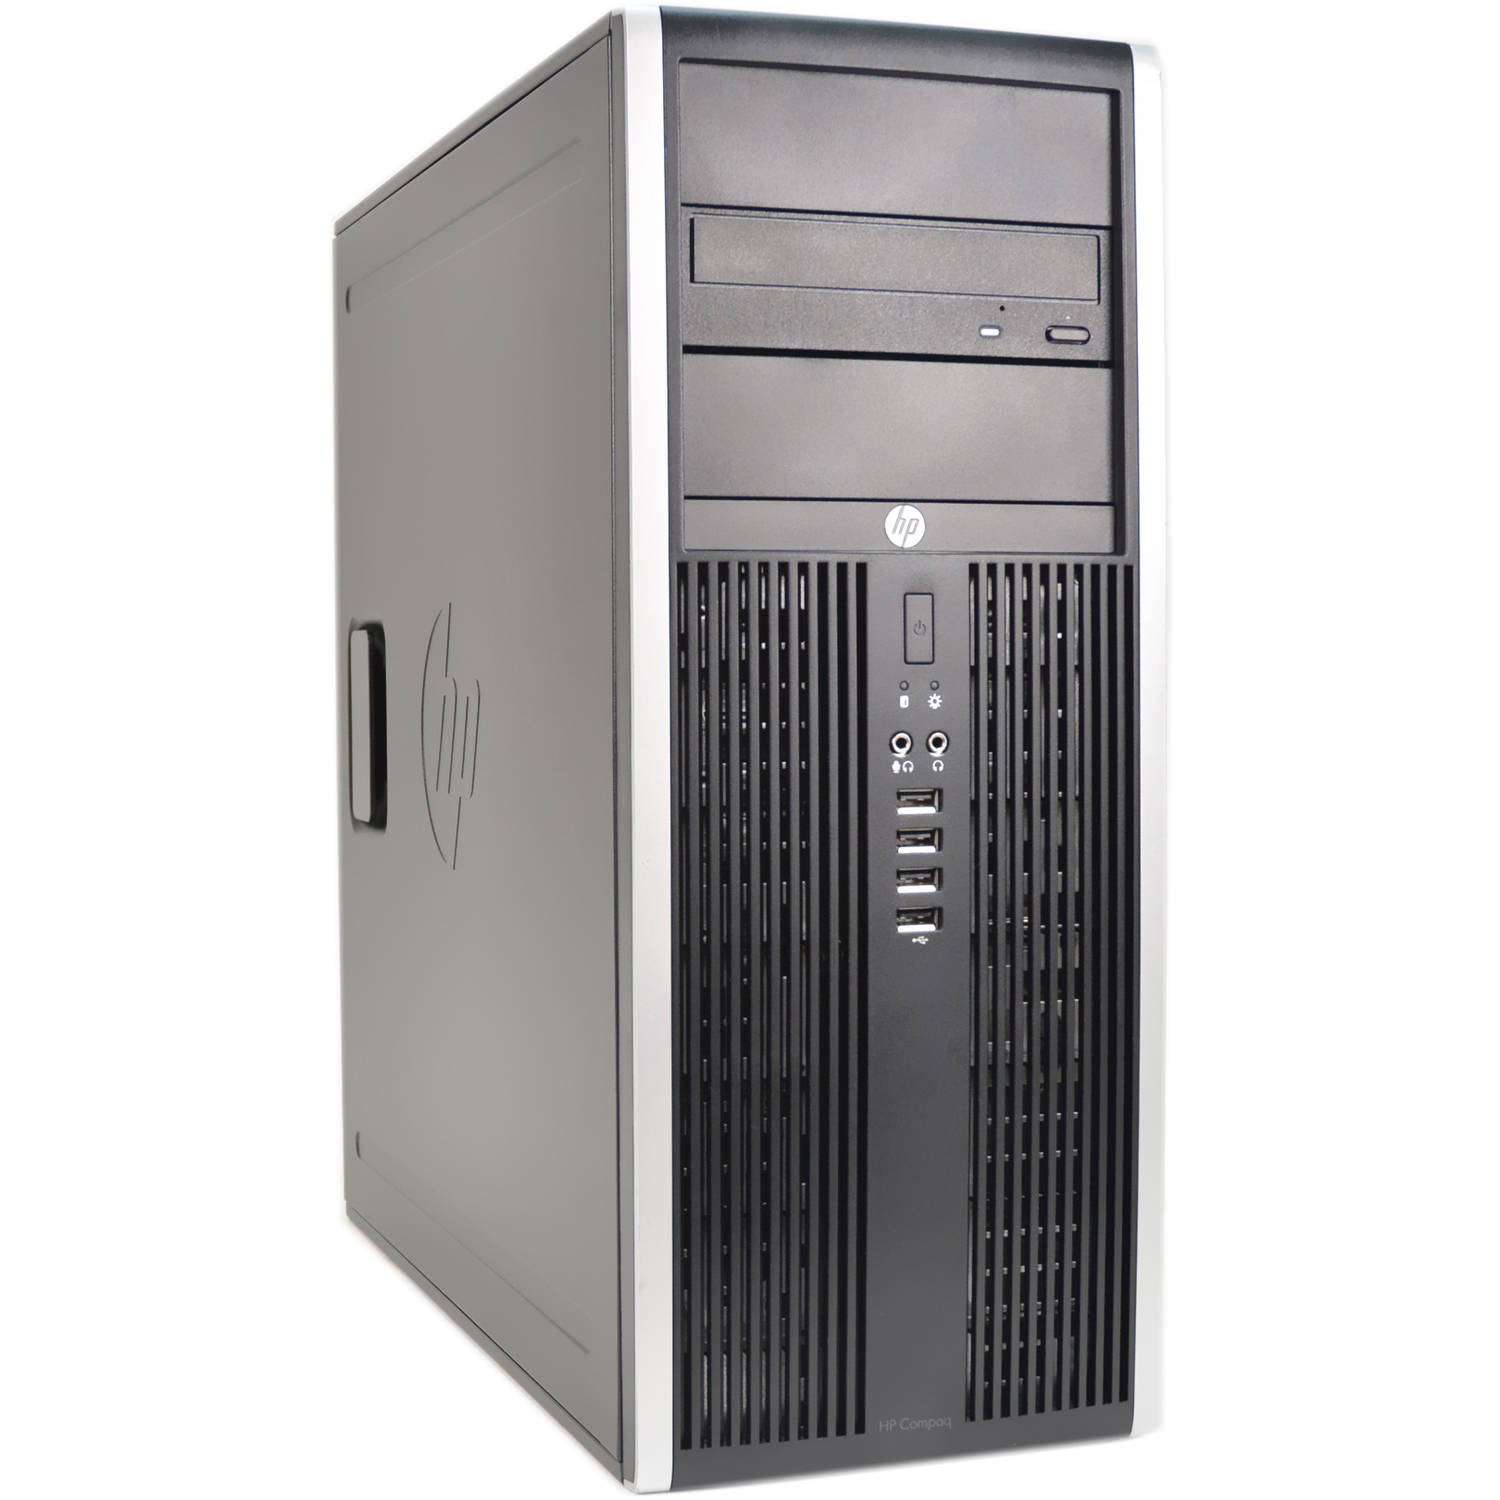 Refurbished HP Black 8000 Desktop PC with Intel Core 2 Duo Processor, 4GB Memory, 1TB Hard Drive and Windows 10 Pro (Monitor Not Included)